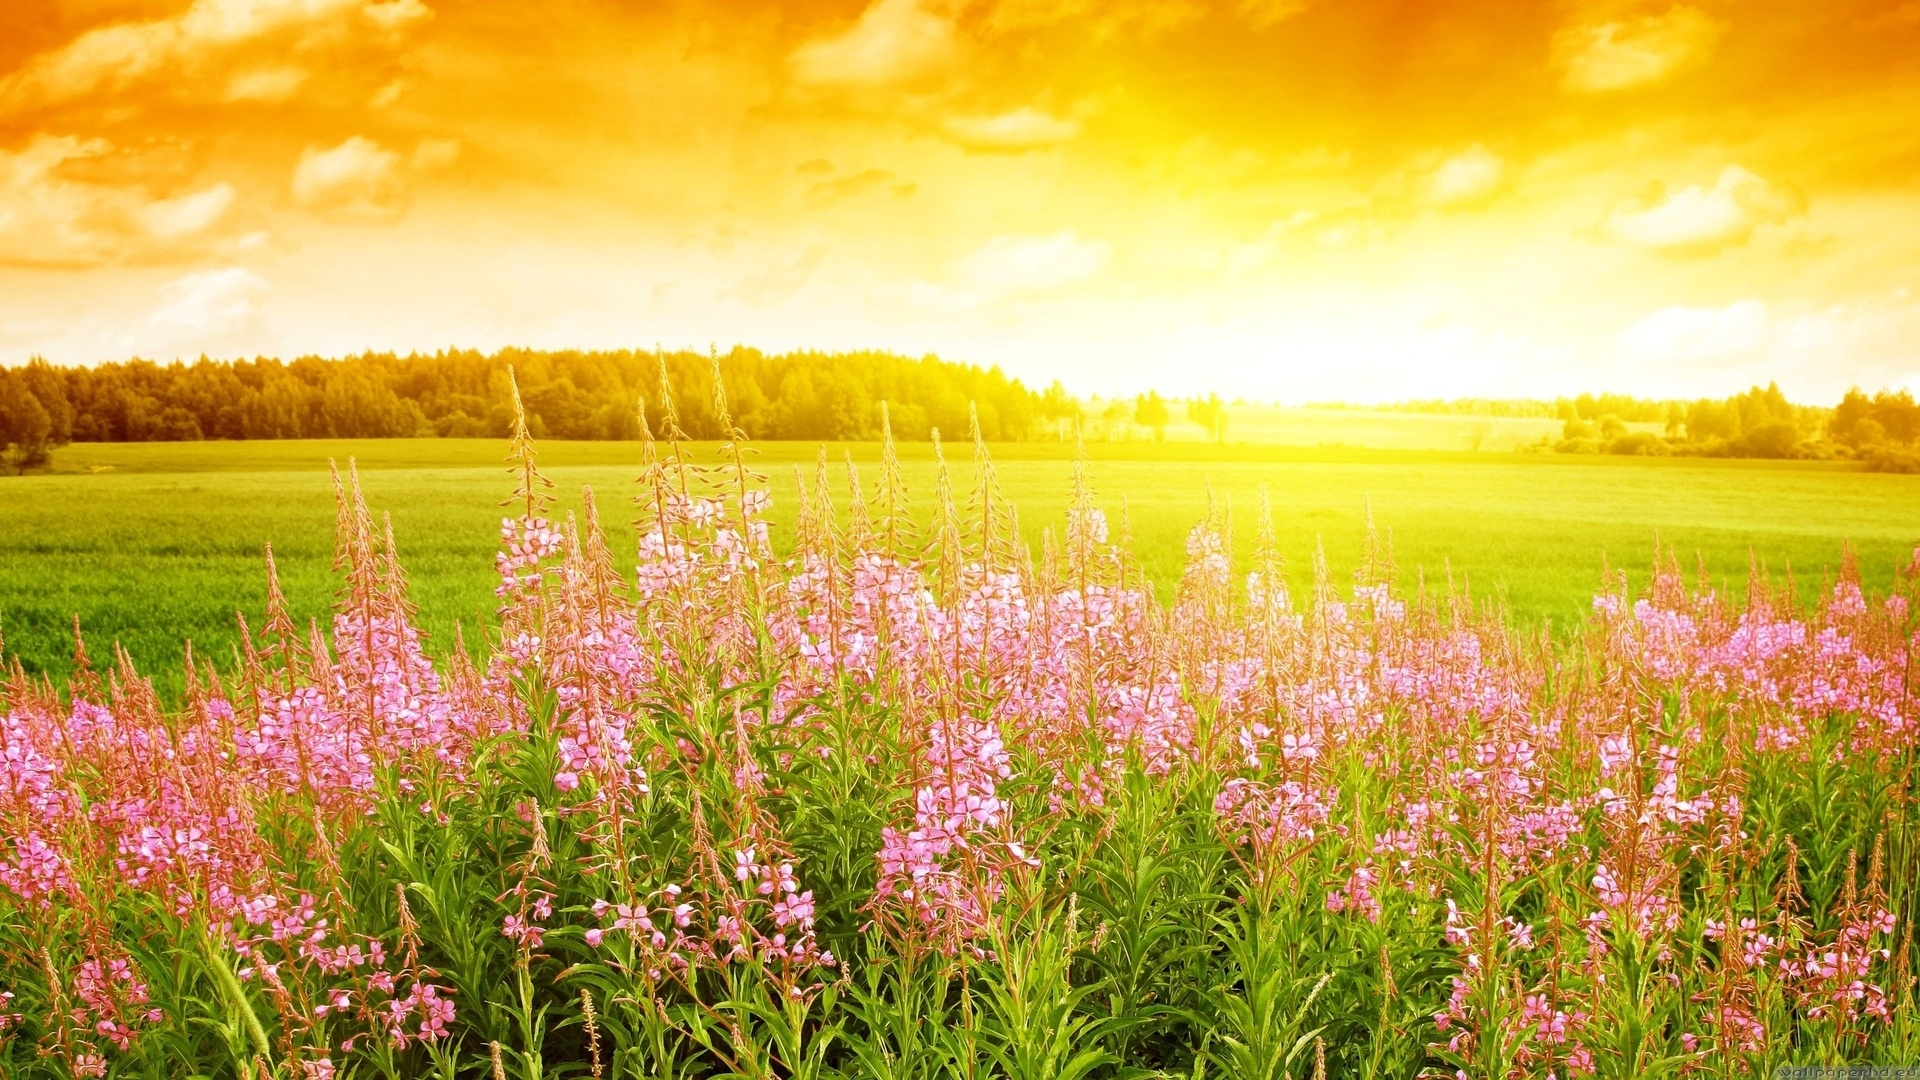 Flowers field wallpapers flower Flower HD Wallpaper 1920x1080 px